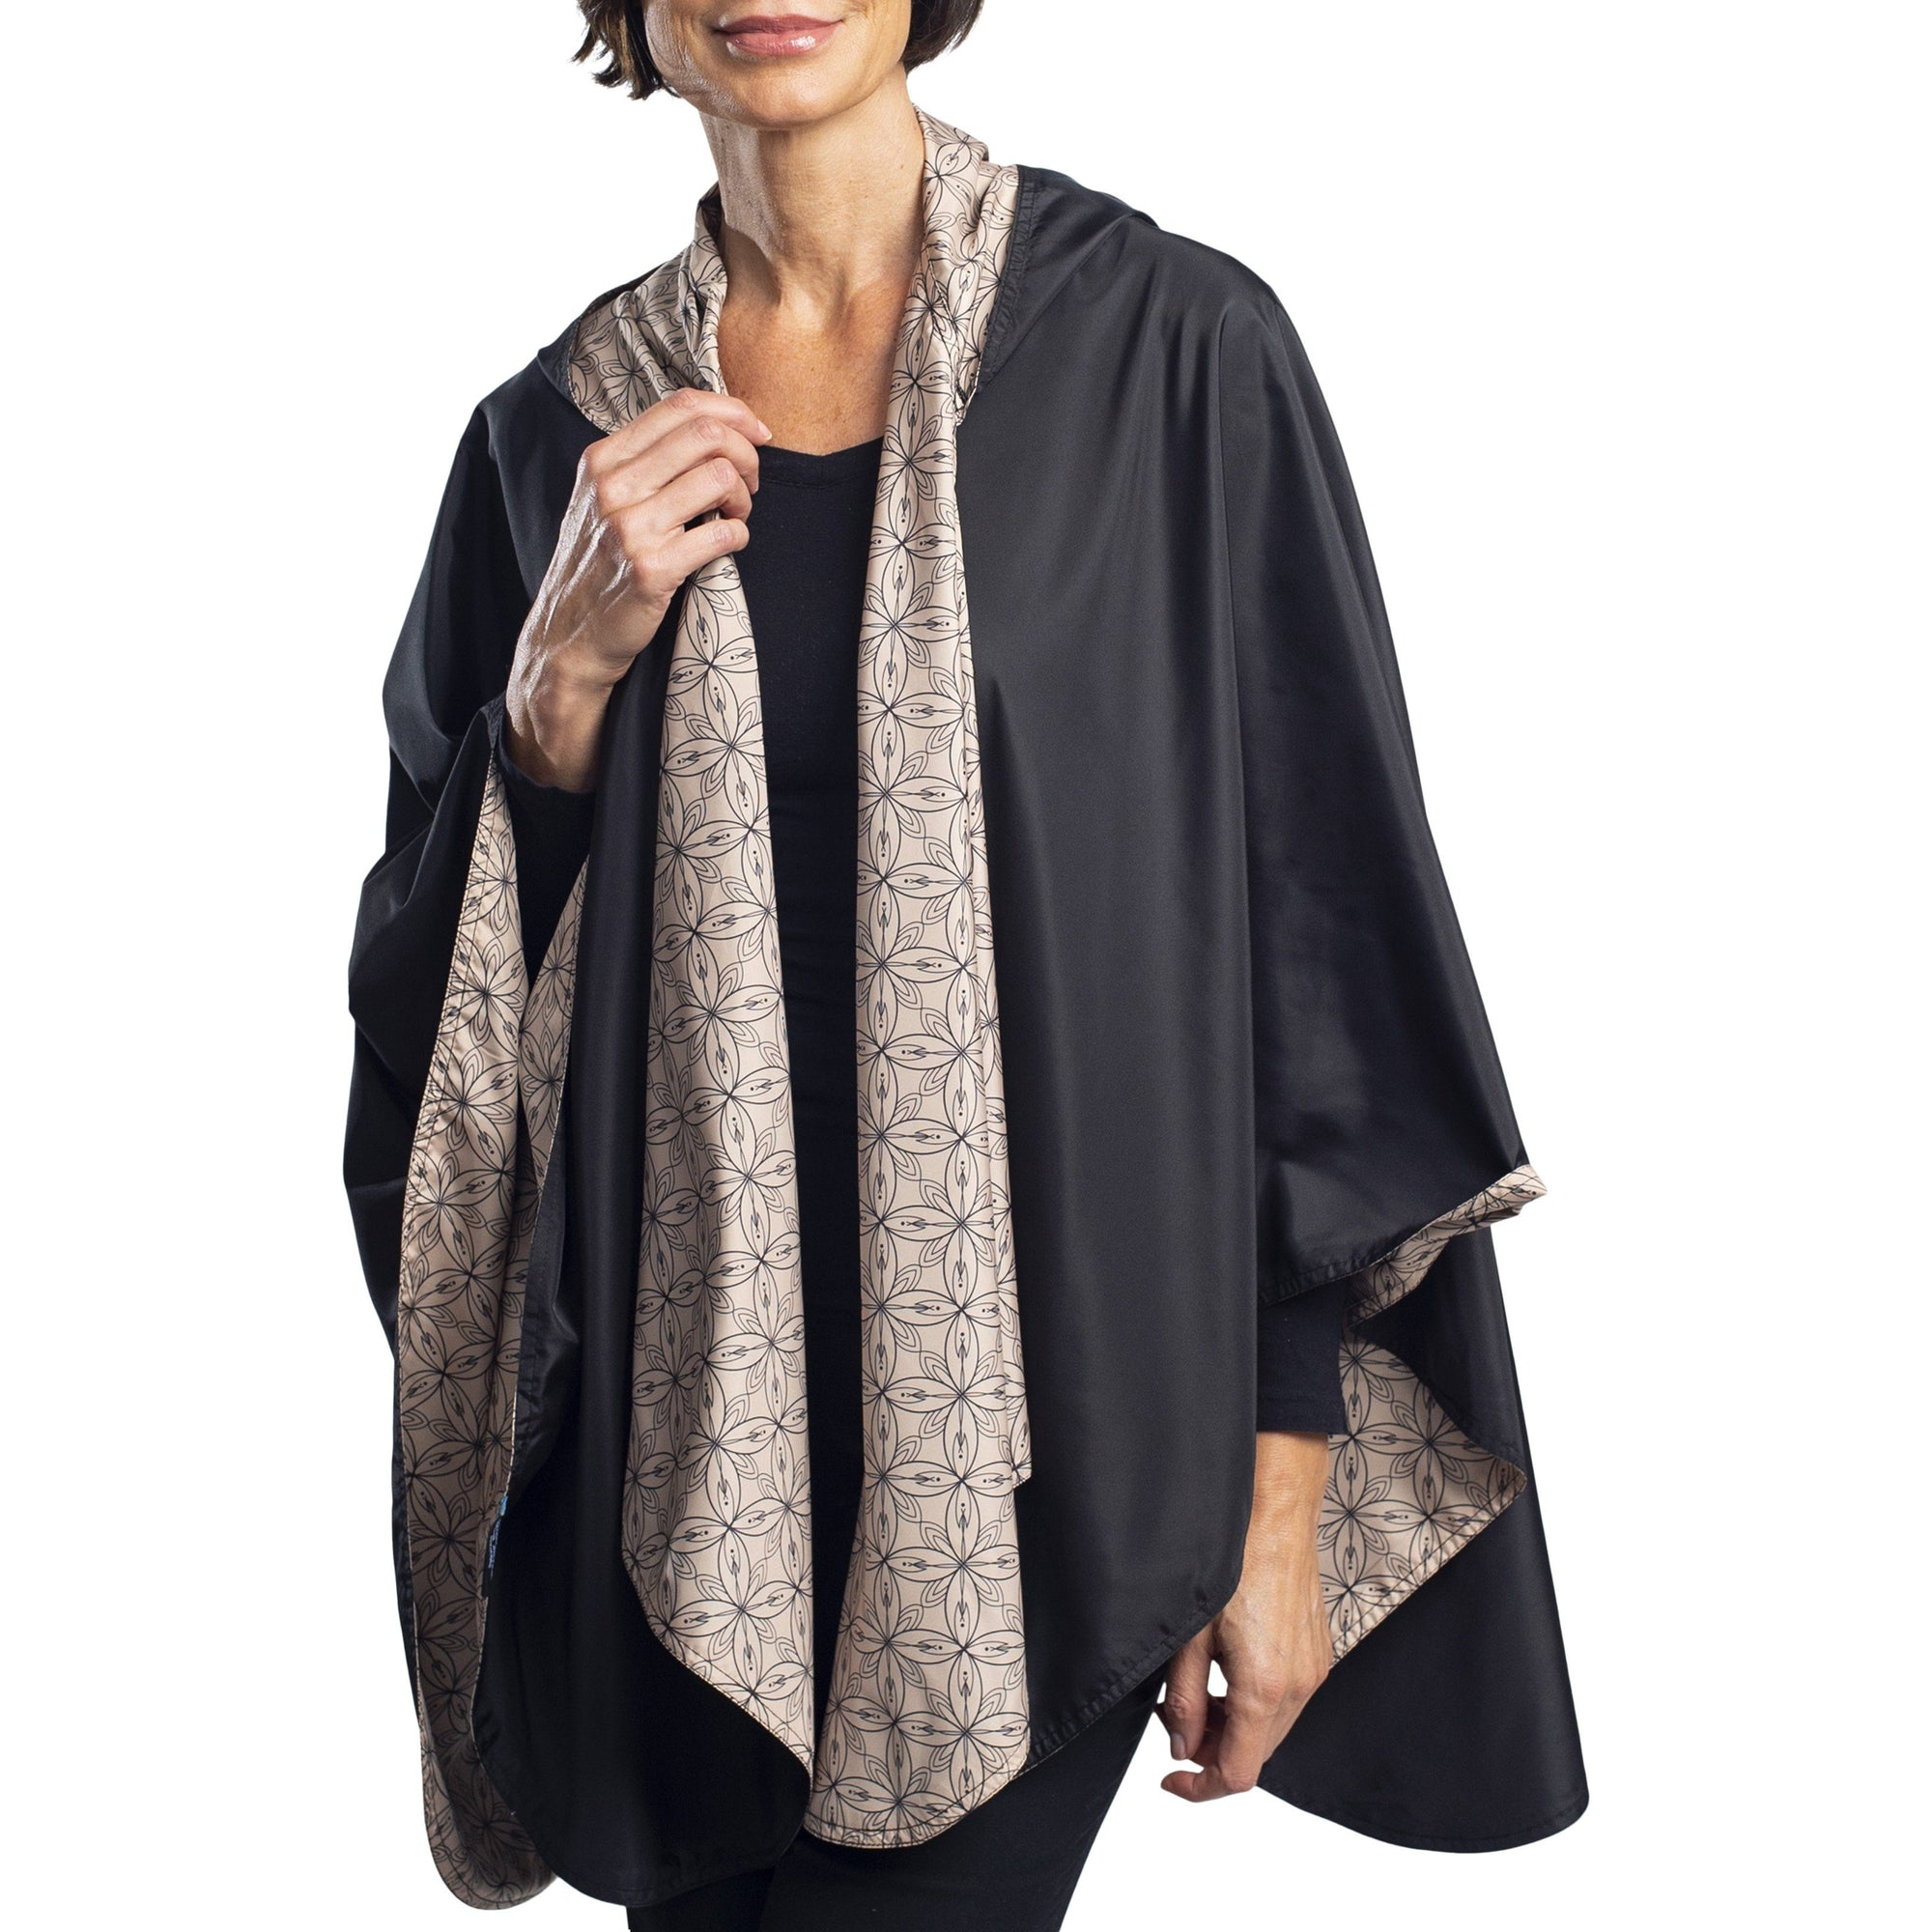 Women wearing a Black/Camel Kelsey Print RainCaper travel cape with the Black side out, revealing the Camel Kelsey print at the lapels and cuffs